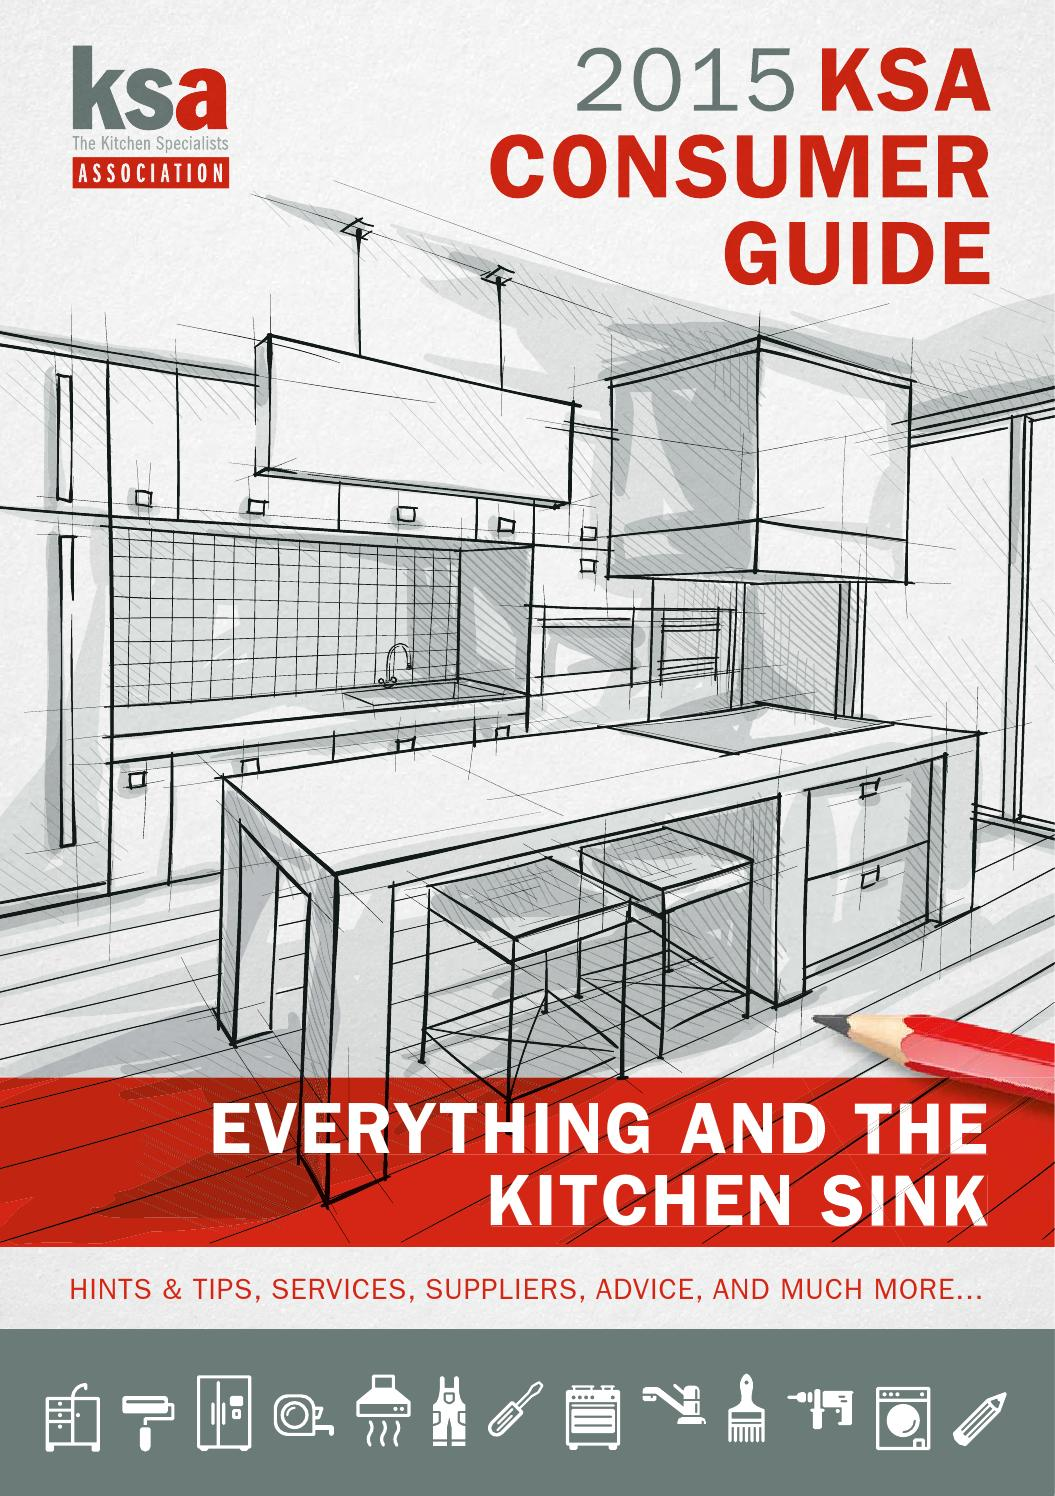 KSA Consumer Guide 2015 by The Kitchen Specialists Association ...